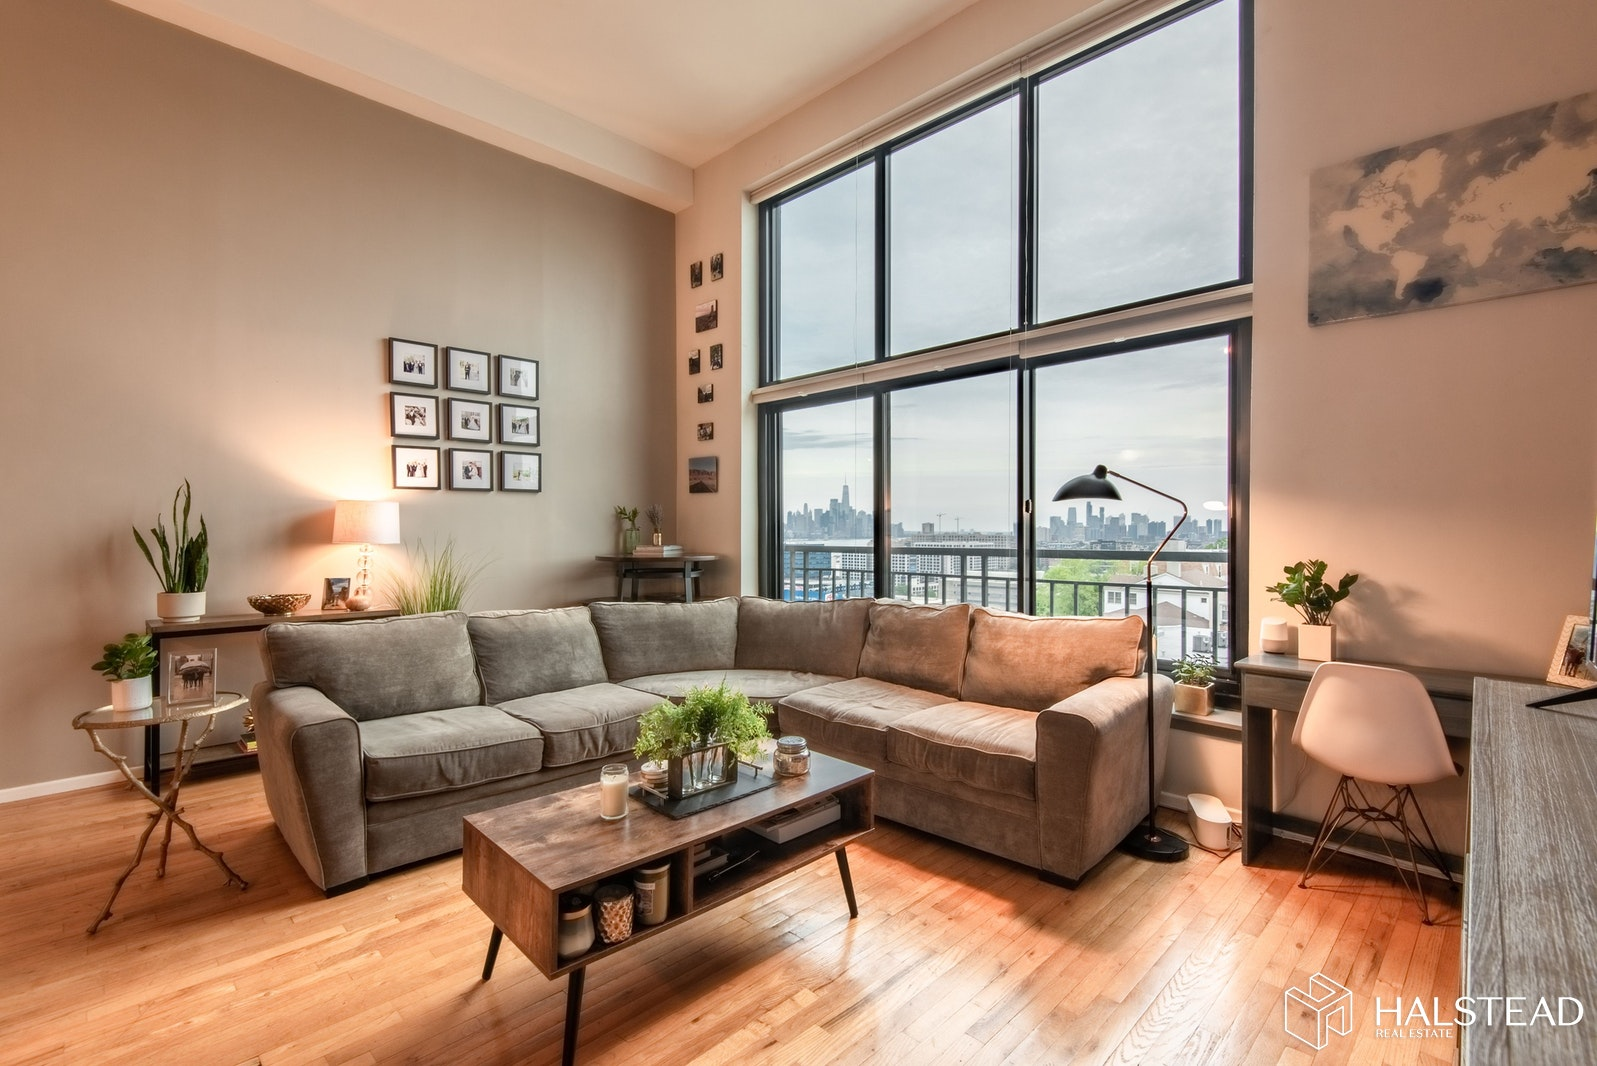 518 Gregory Ave A412, Weehawken, New Jersey, 07086, $495,000, Property For Sale, Halstead Real Estate, Photo 1